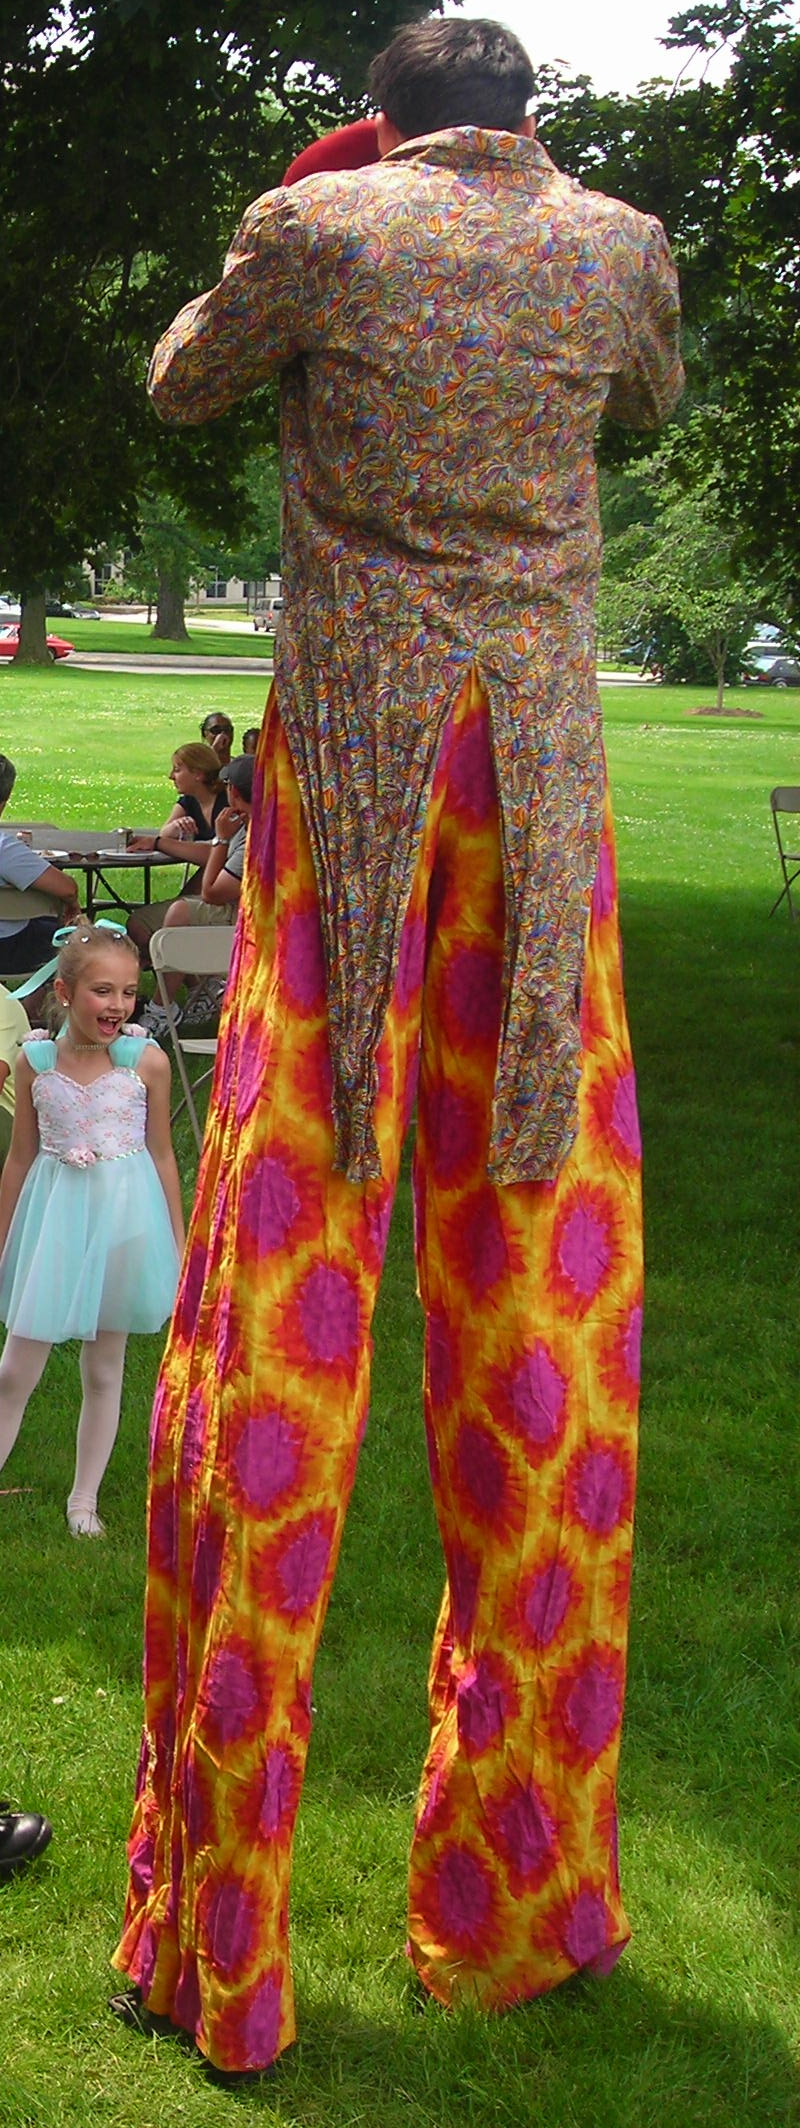 ct-ny-ma-entertainer-pictures-stilt-walker-clown